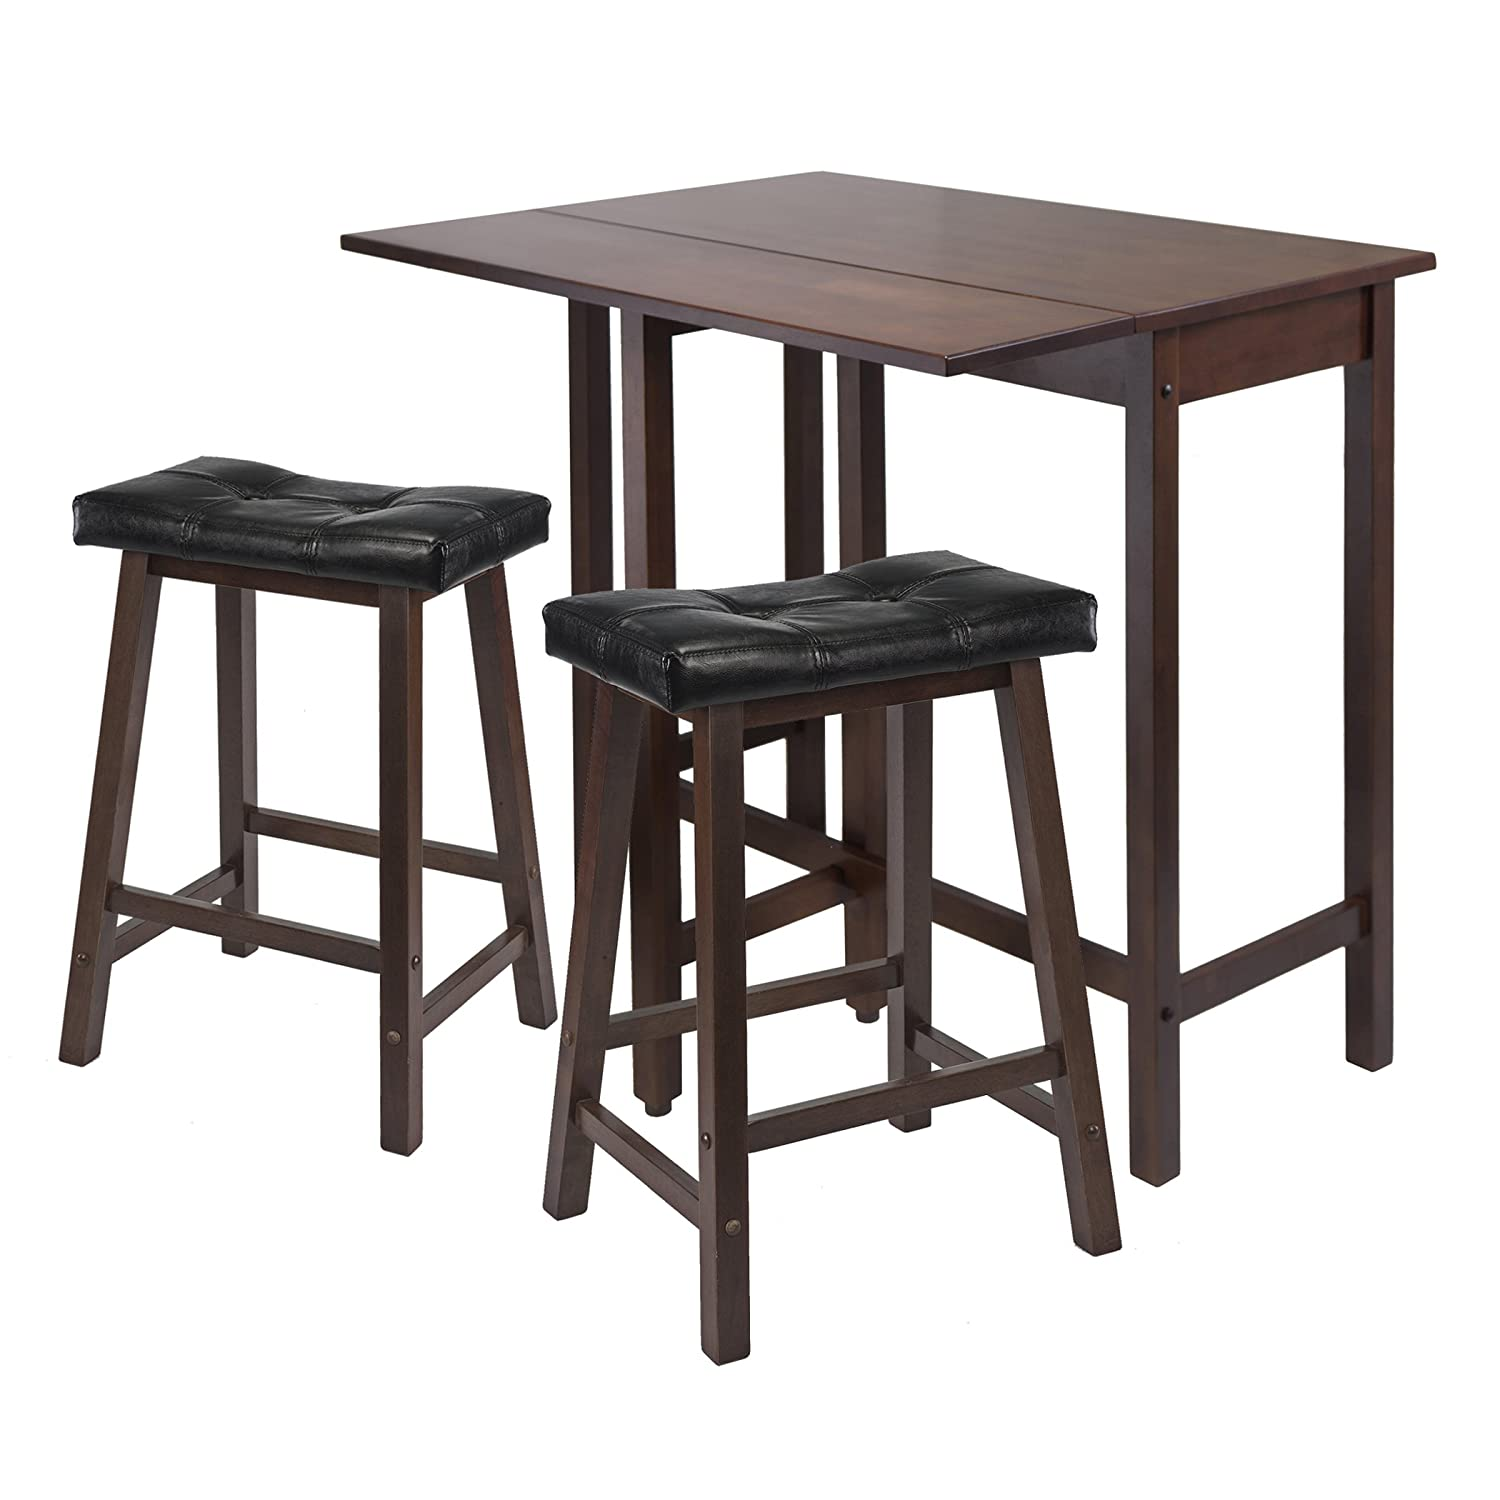 Amazoncom Winsome Lynnwood Drop Leaf Kitchen Table with 2